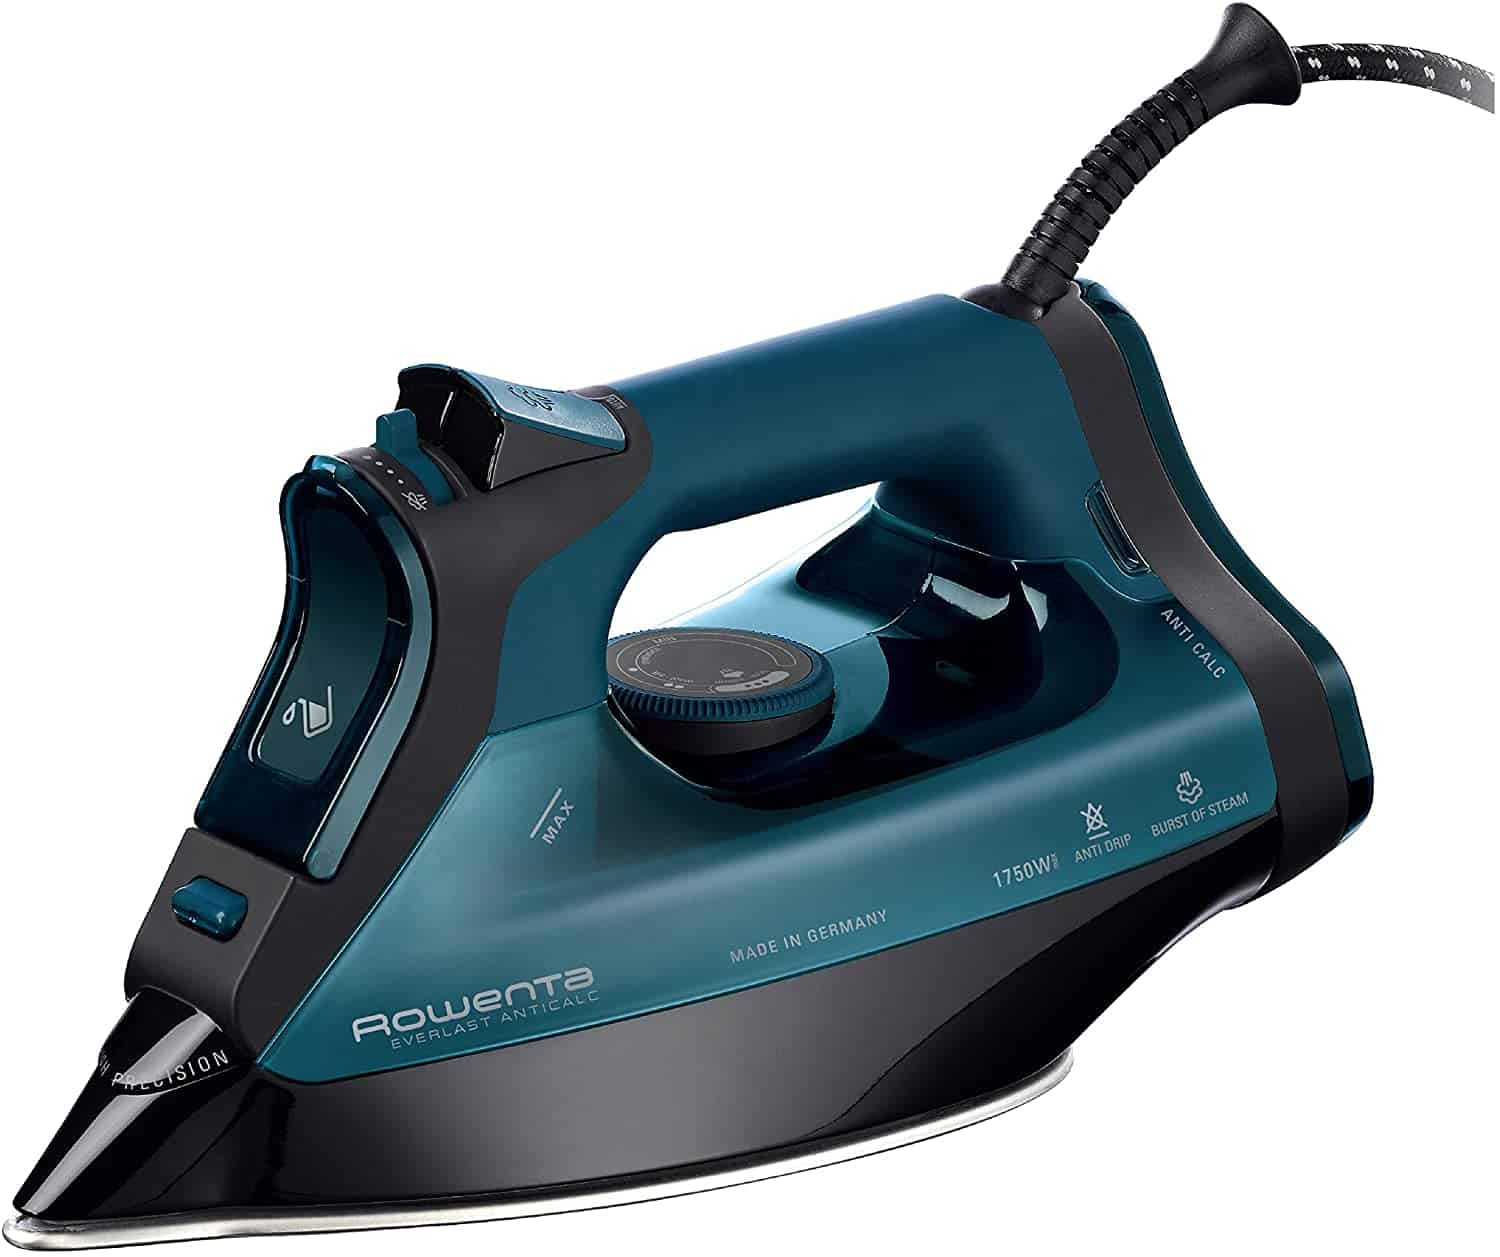 Best Steam Irons For Sewing